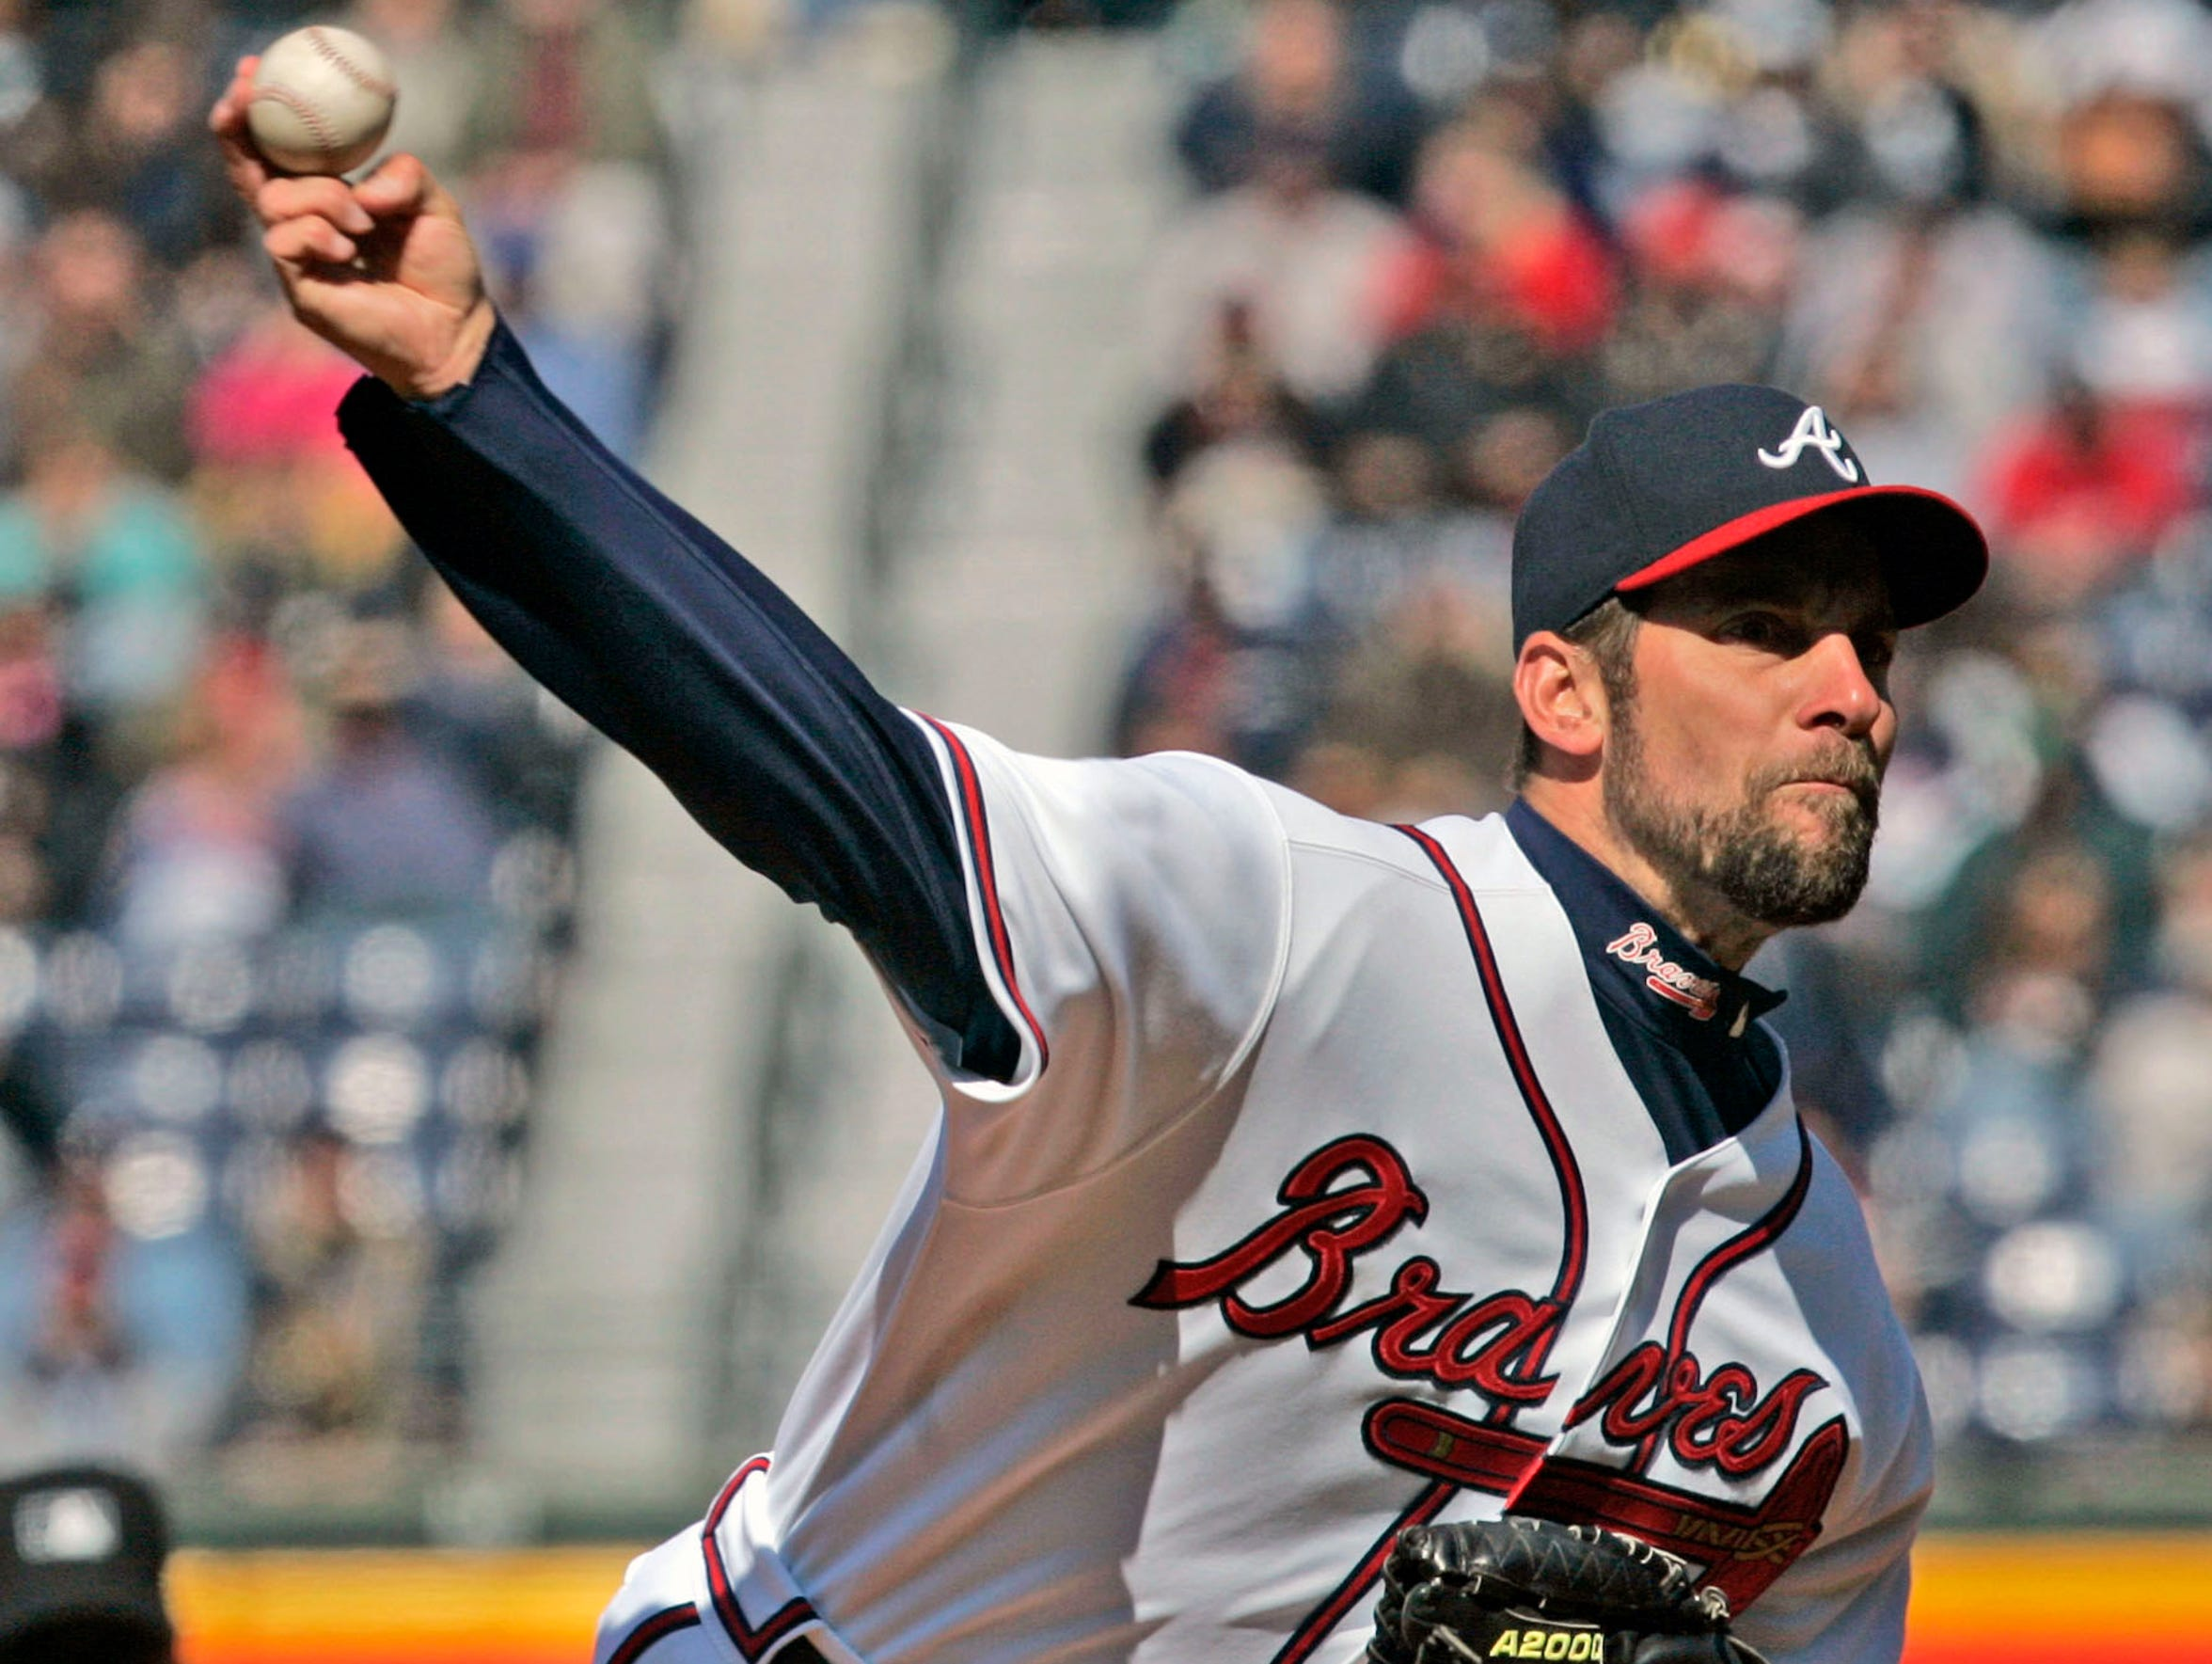 John Smoltz was elected to the Baseball Hall of Fame